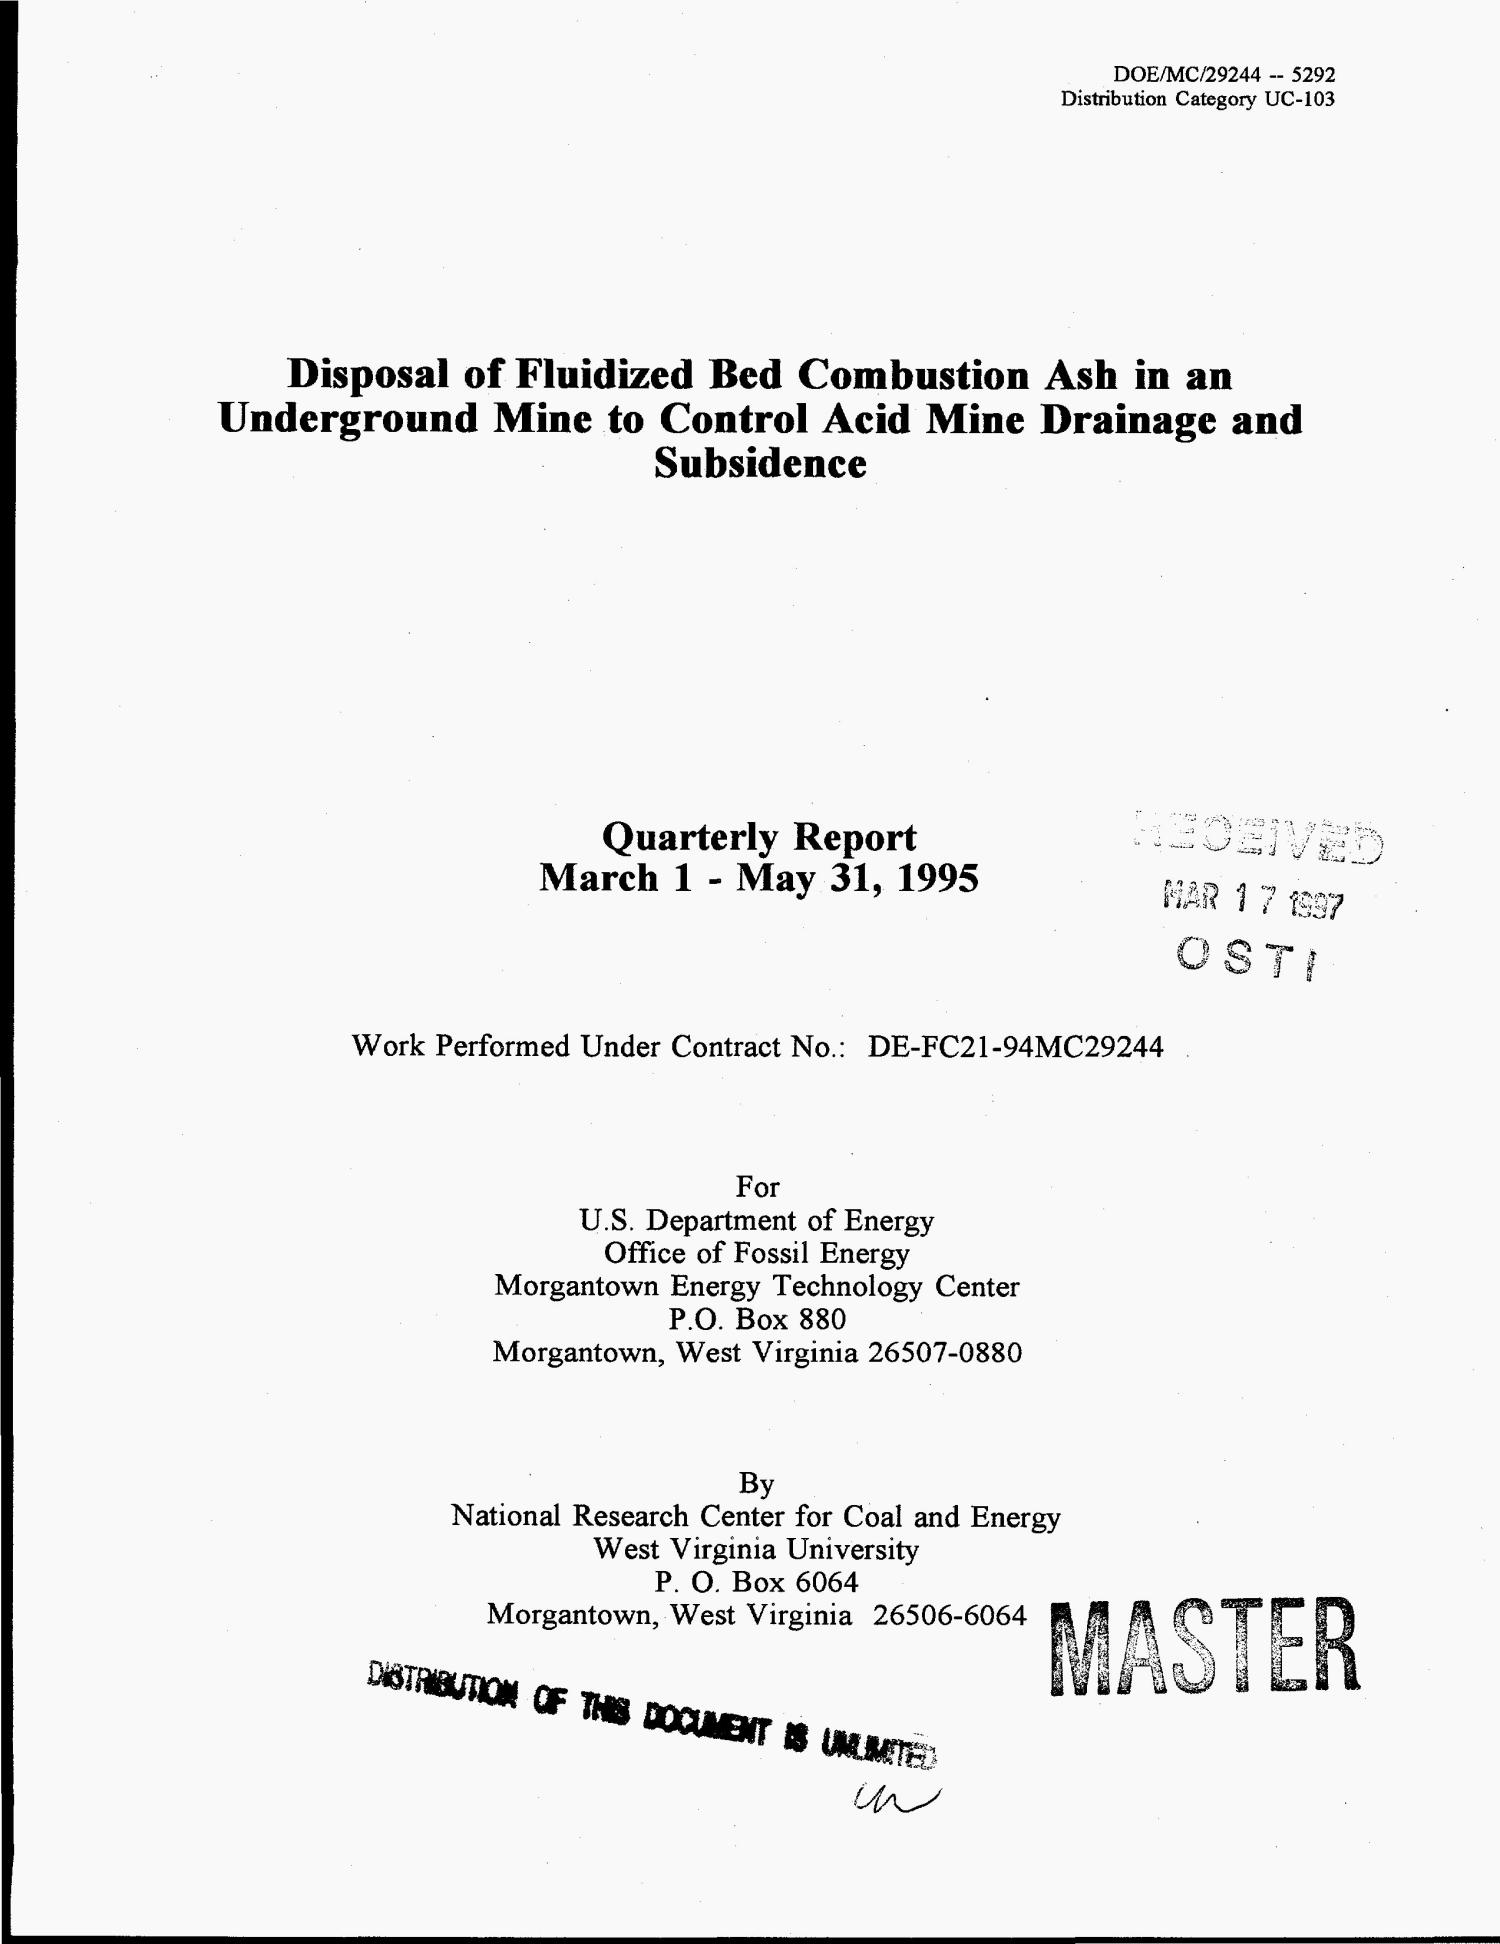 Disposal of fluidized bed combustion ash in an underground mine to control acid mine drainage and subsidence: Quarterly report, March 1-May 31, 1995                                                                                                      [Sequence #]: 1 of 47